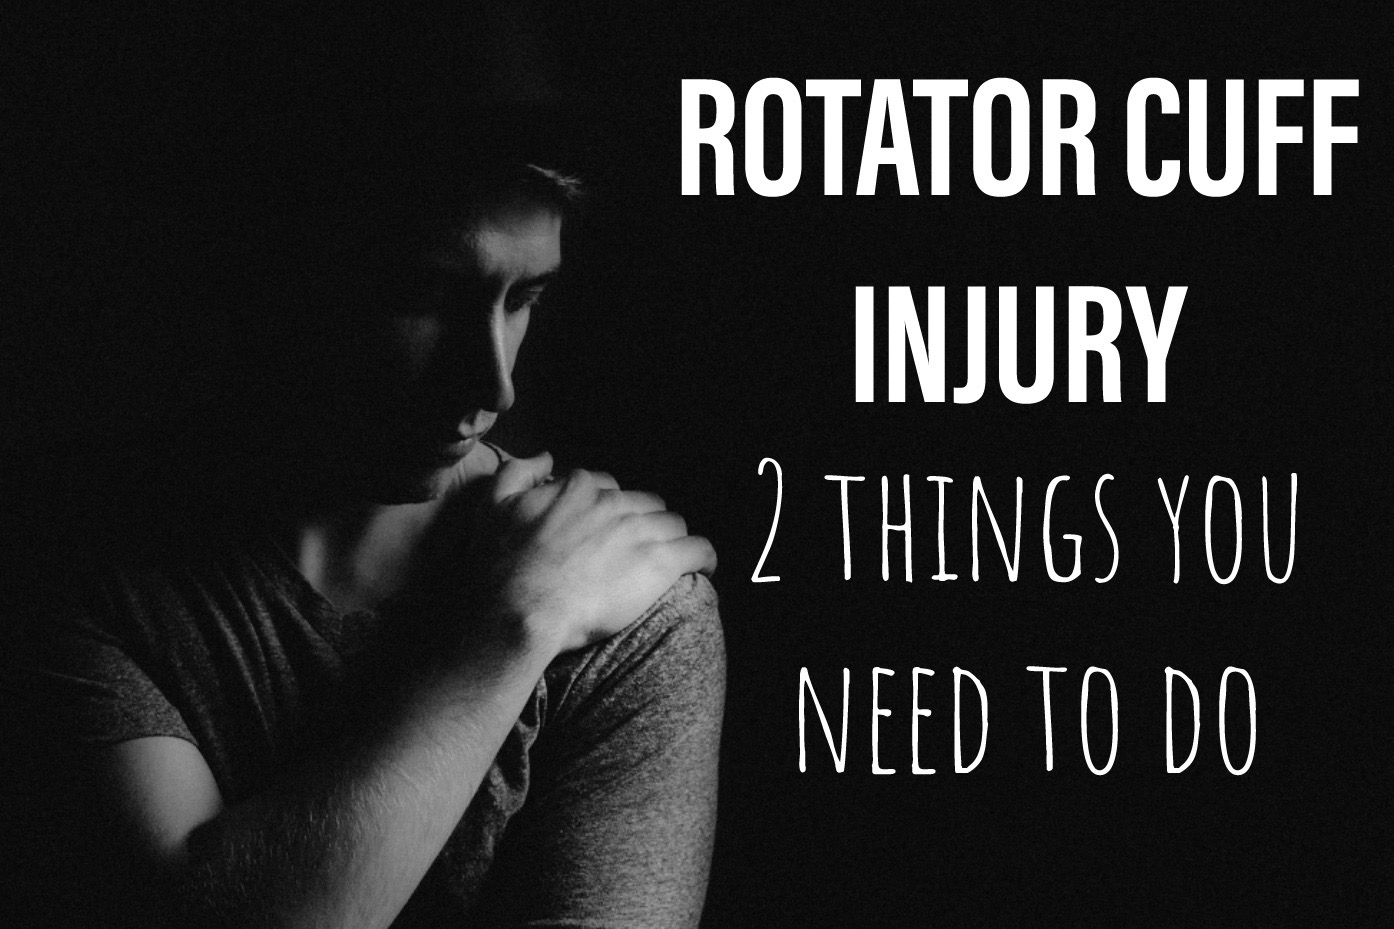 Rotator Cuff Injury, 2 ThingsYou Need To Do